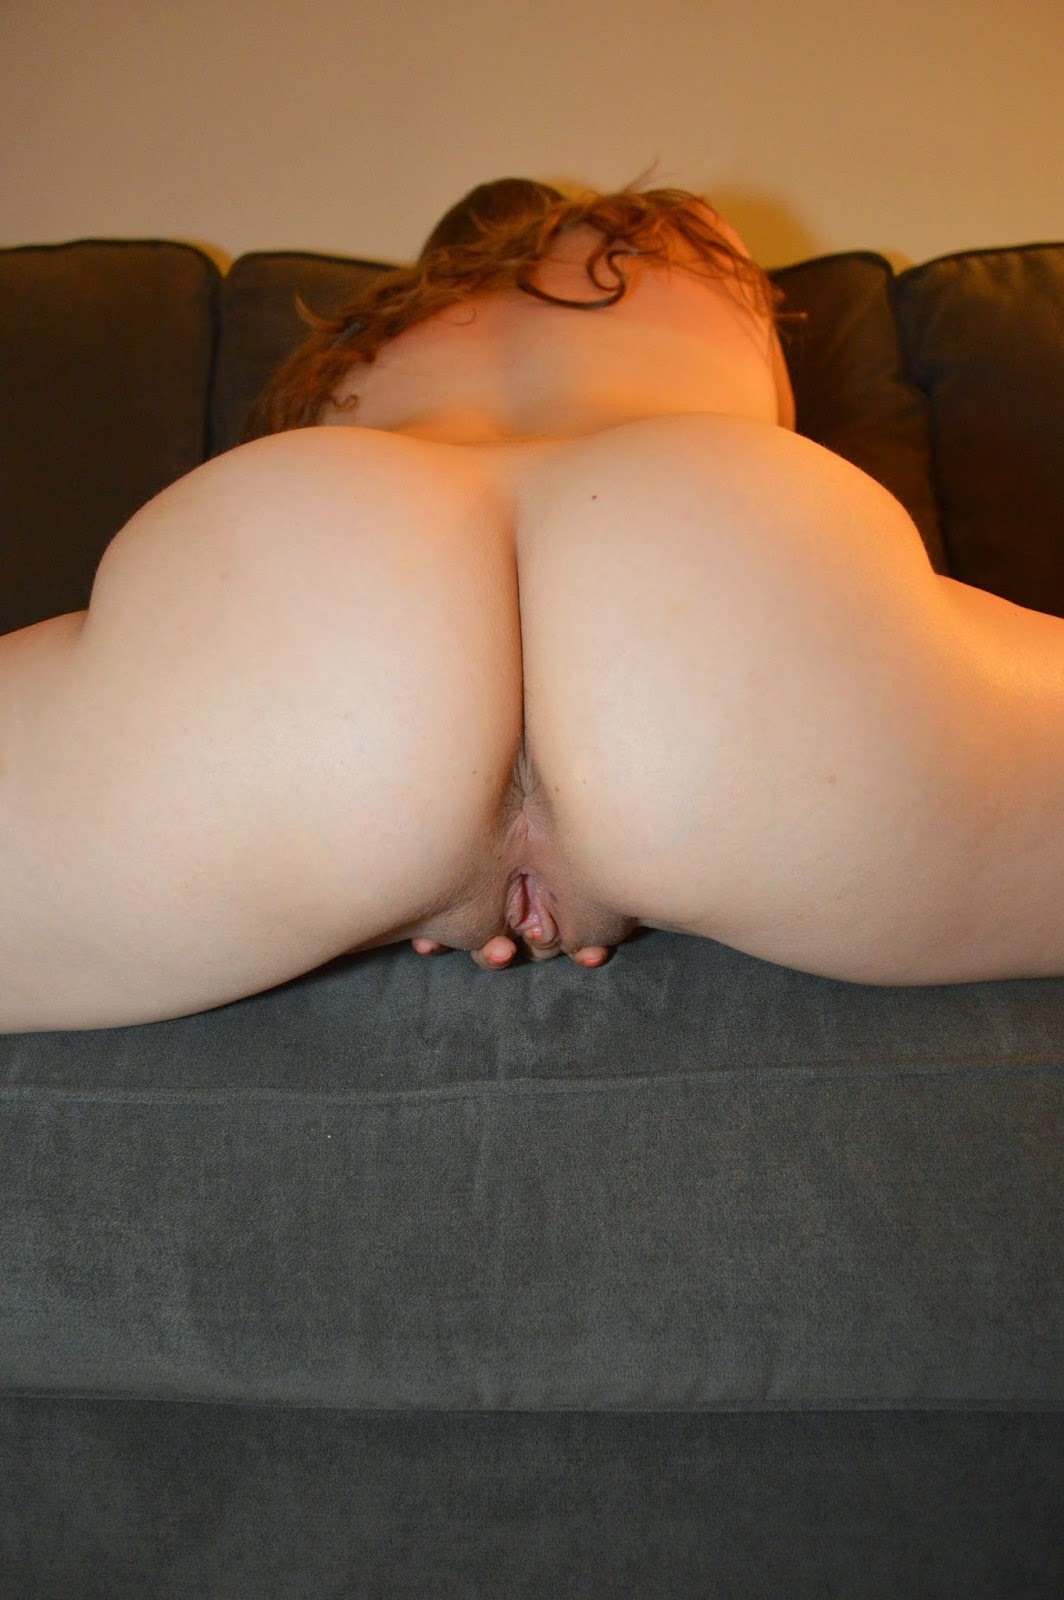 jazmine cashmere porn photo